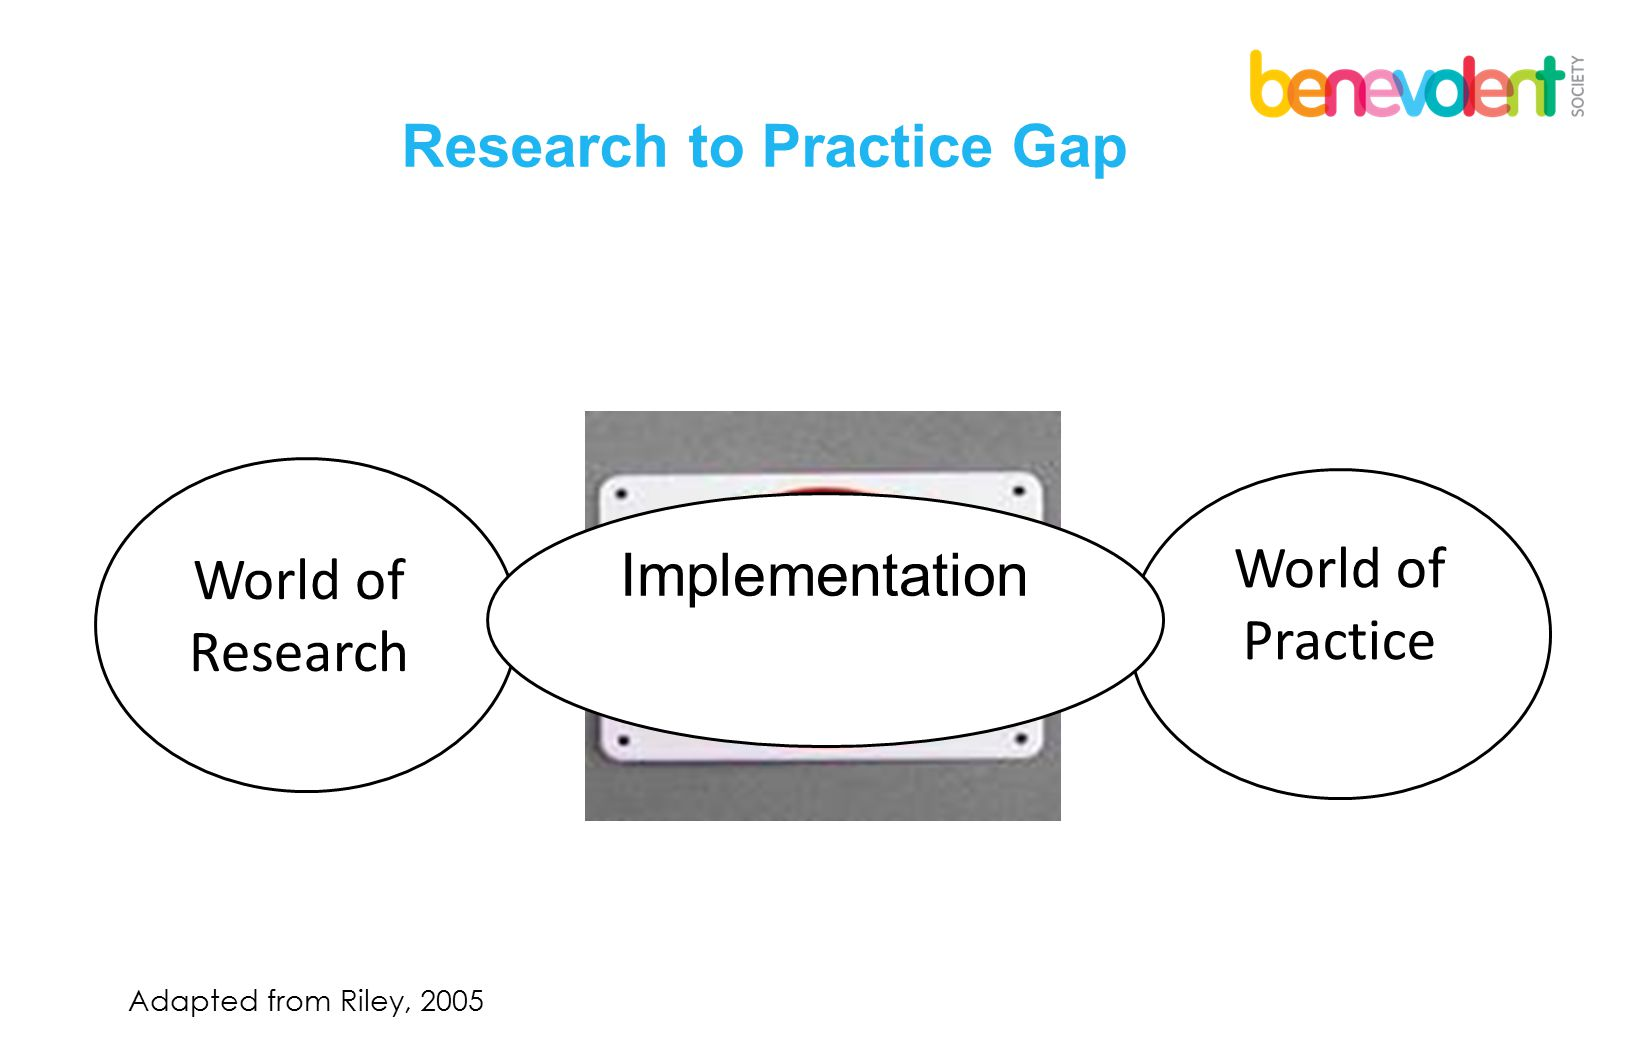 Research to Practice Gap